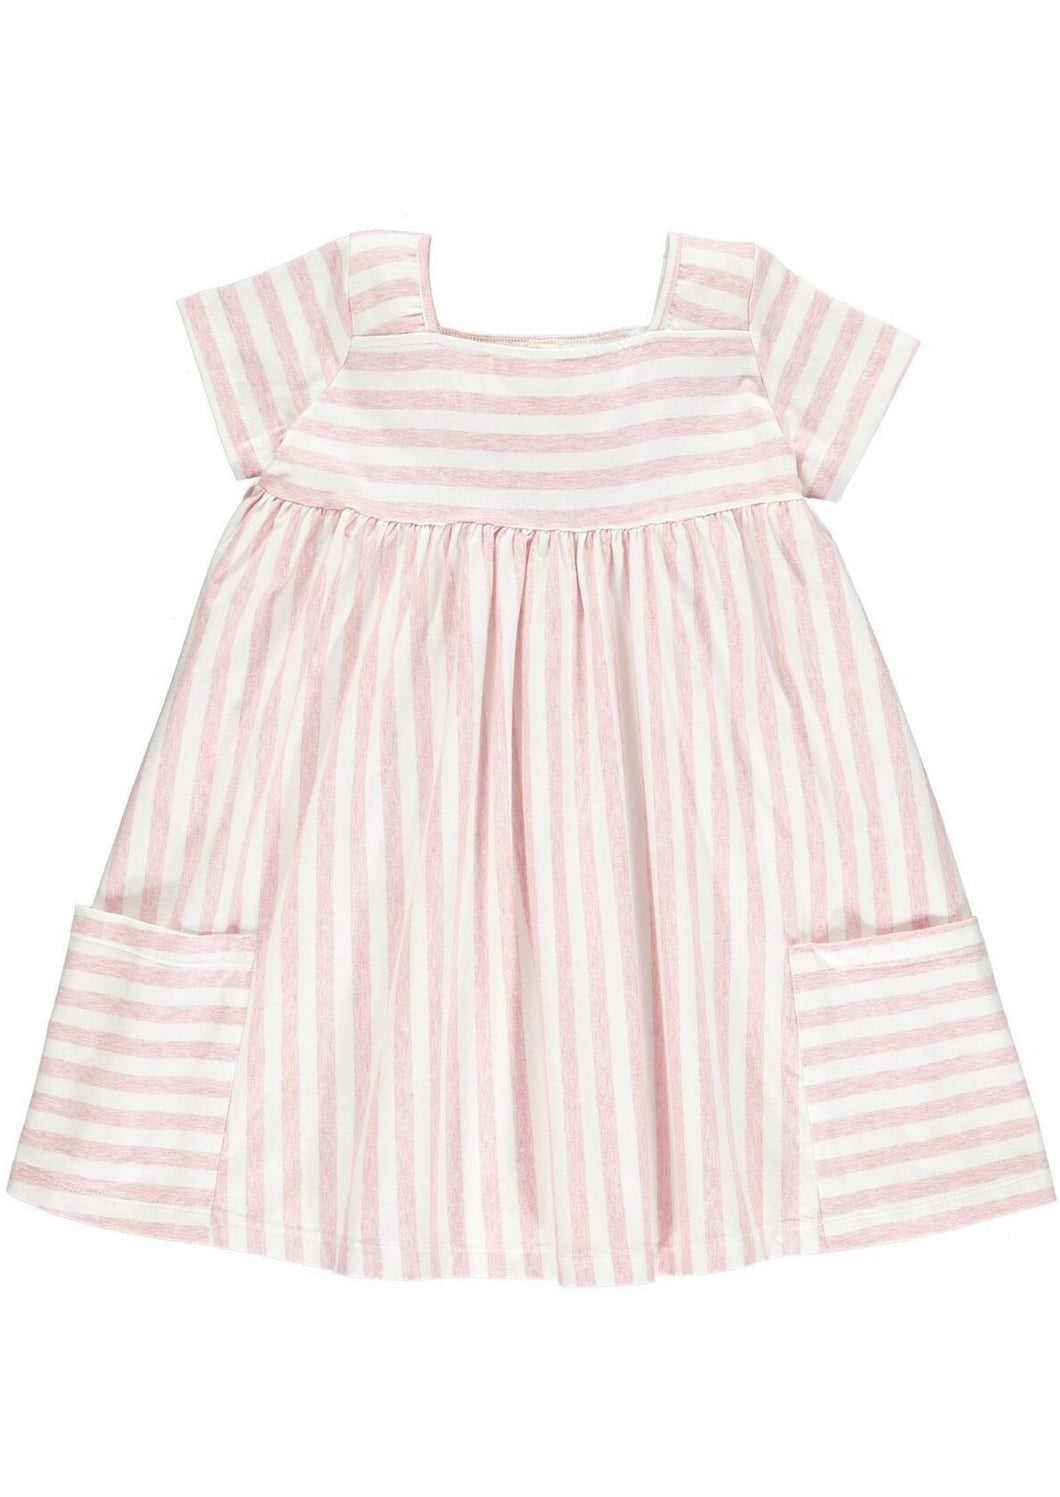 Vignette Rylie Dress Pink